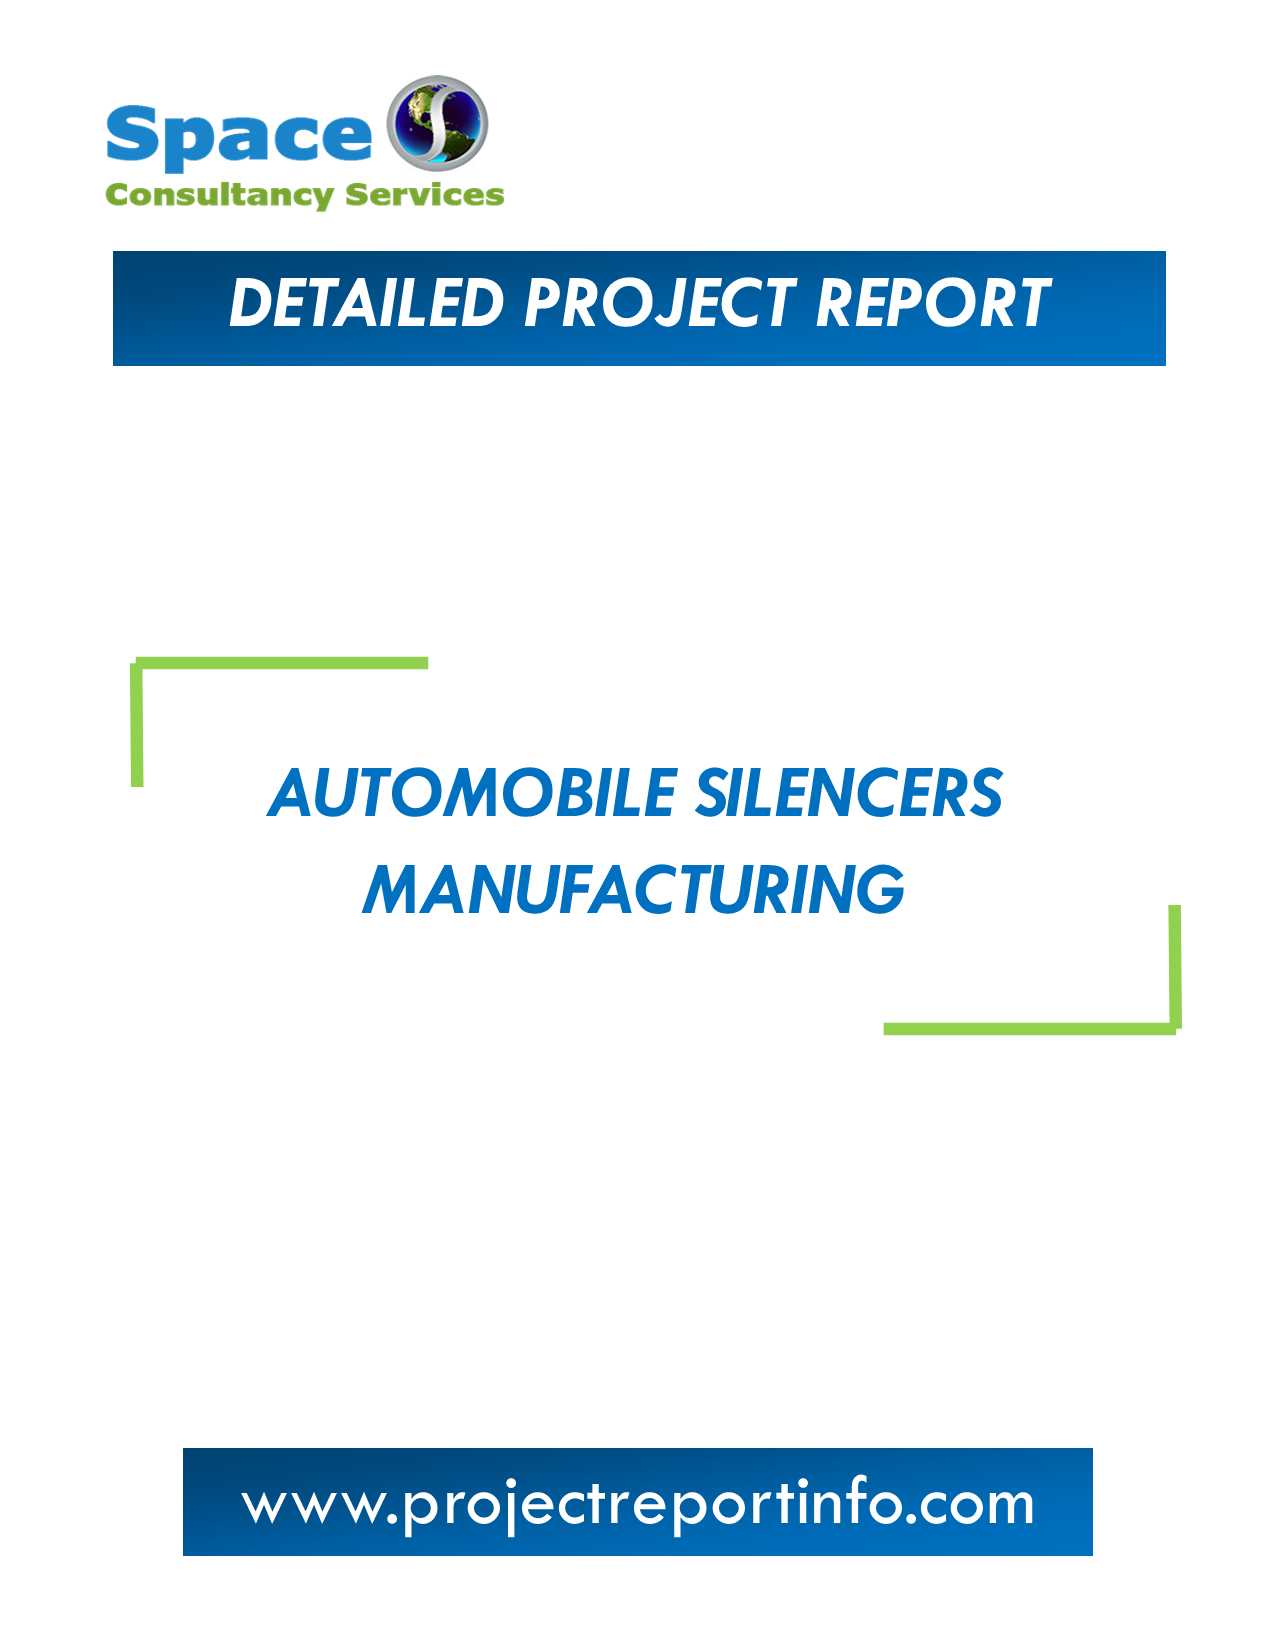 Automobile Silencers Manufacturing Project Report